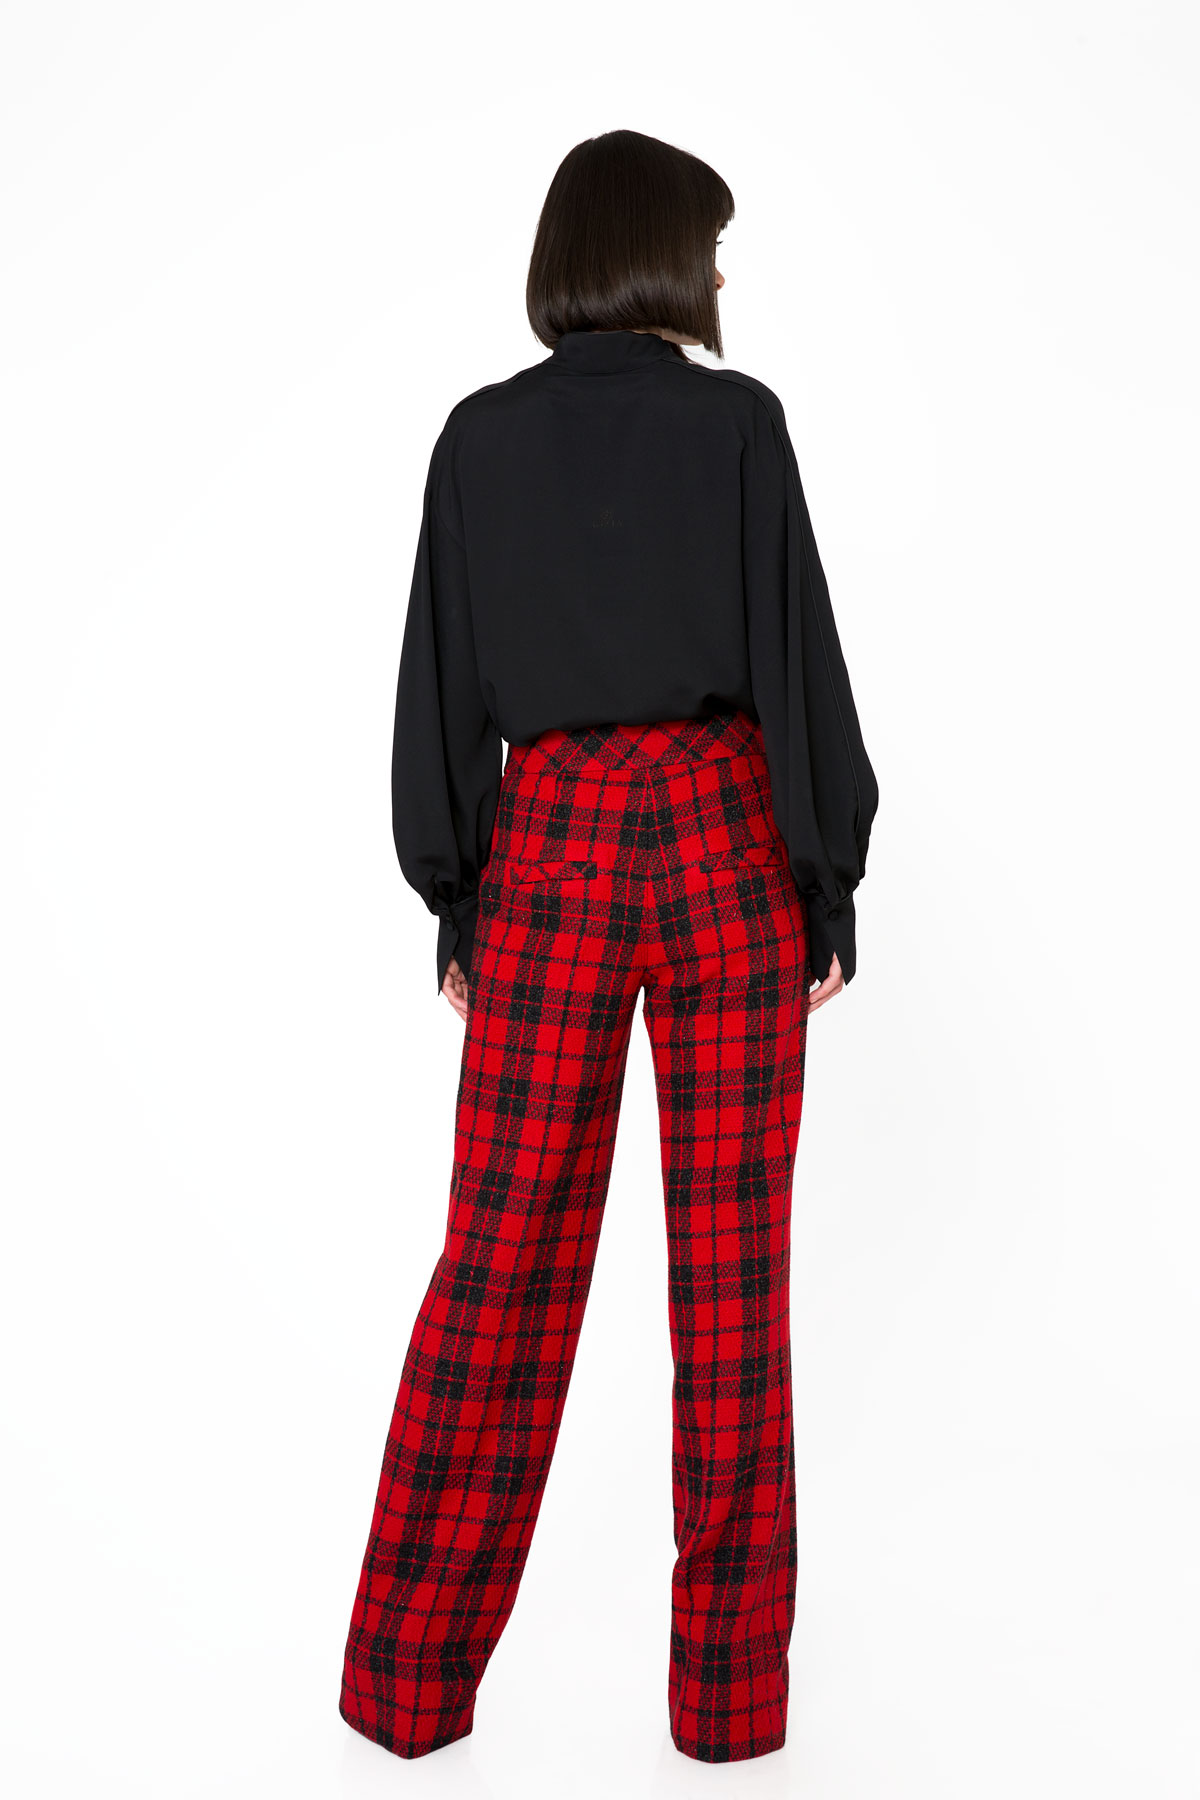 Plaid Patterned High Waist Red Trousers